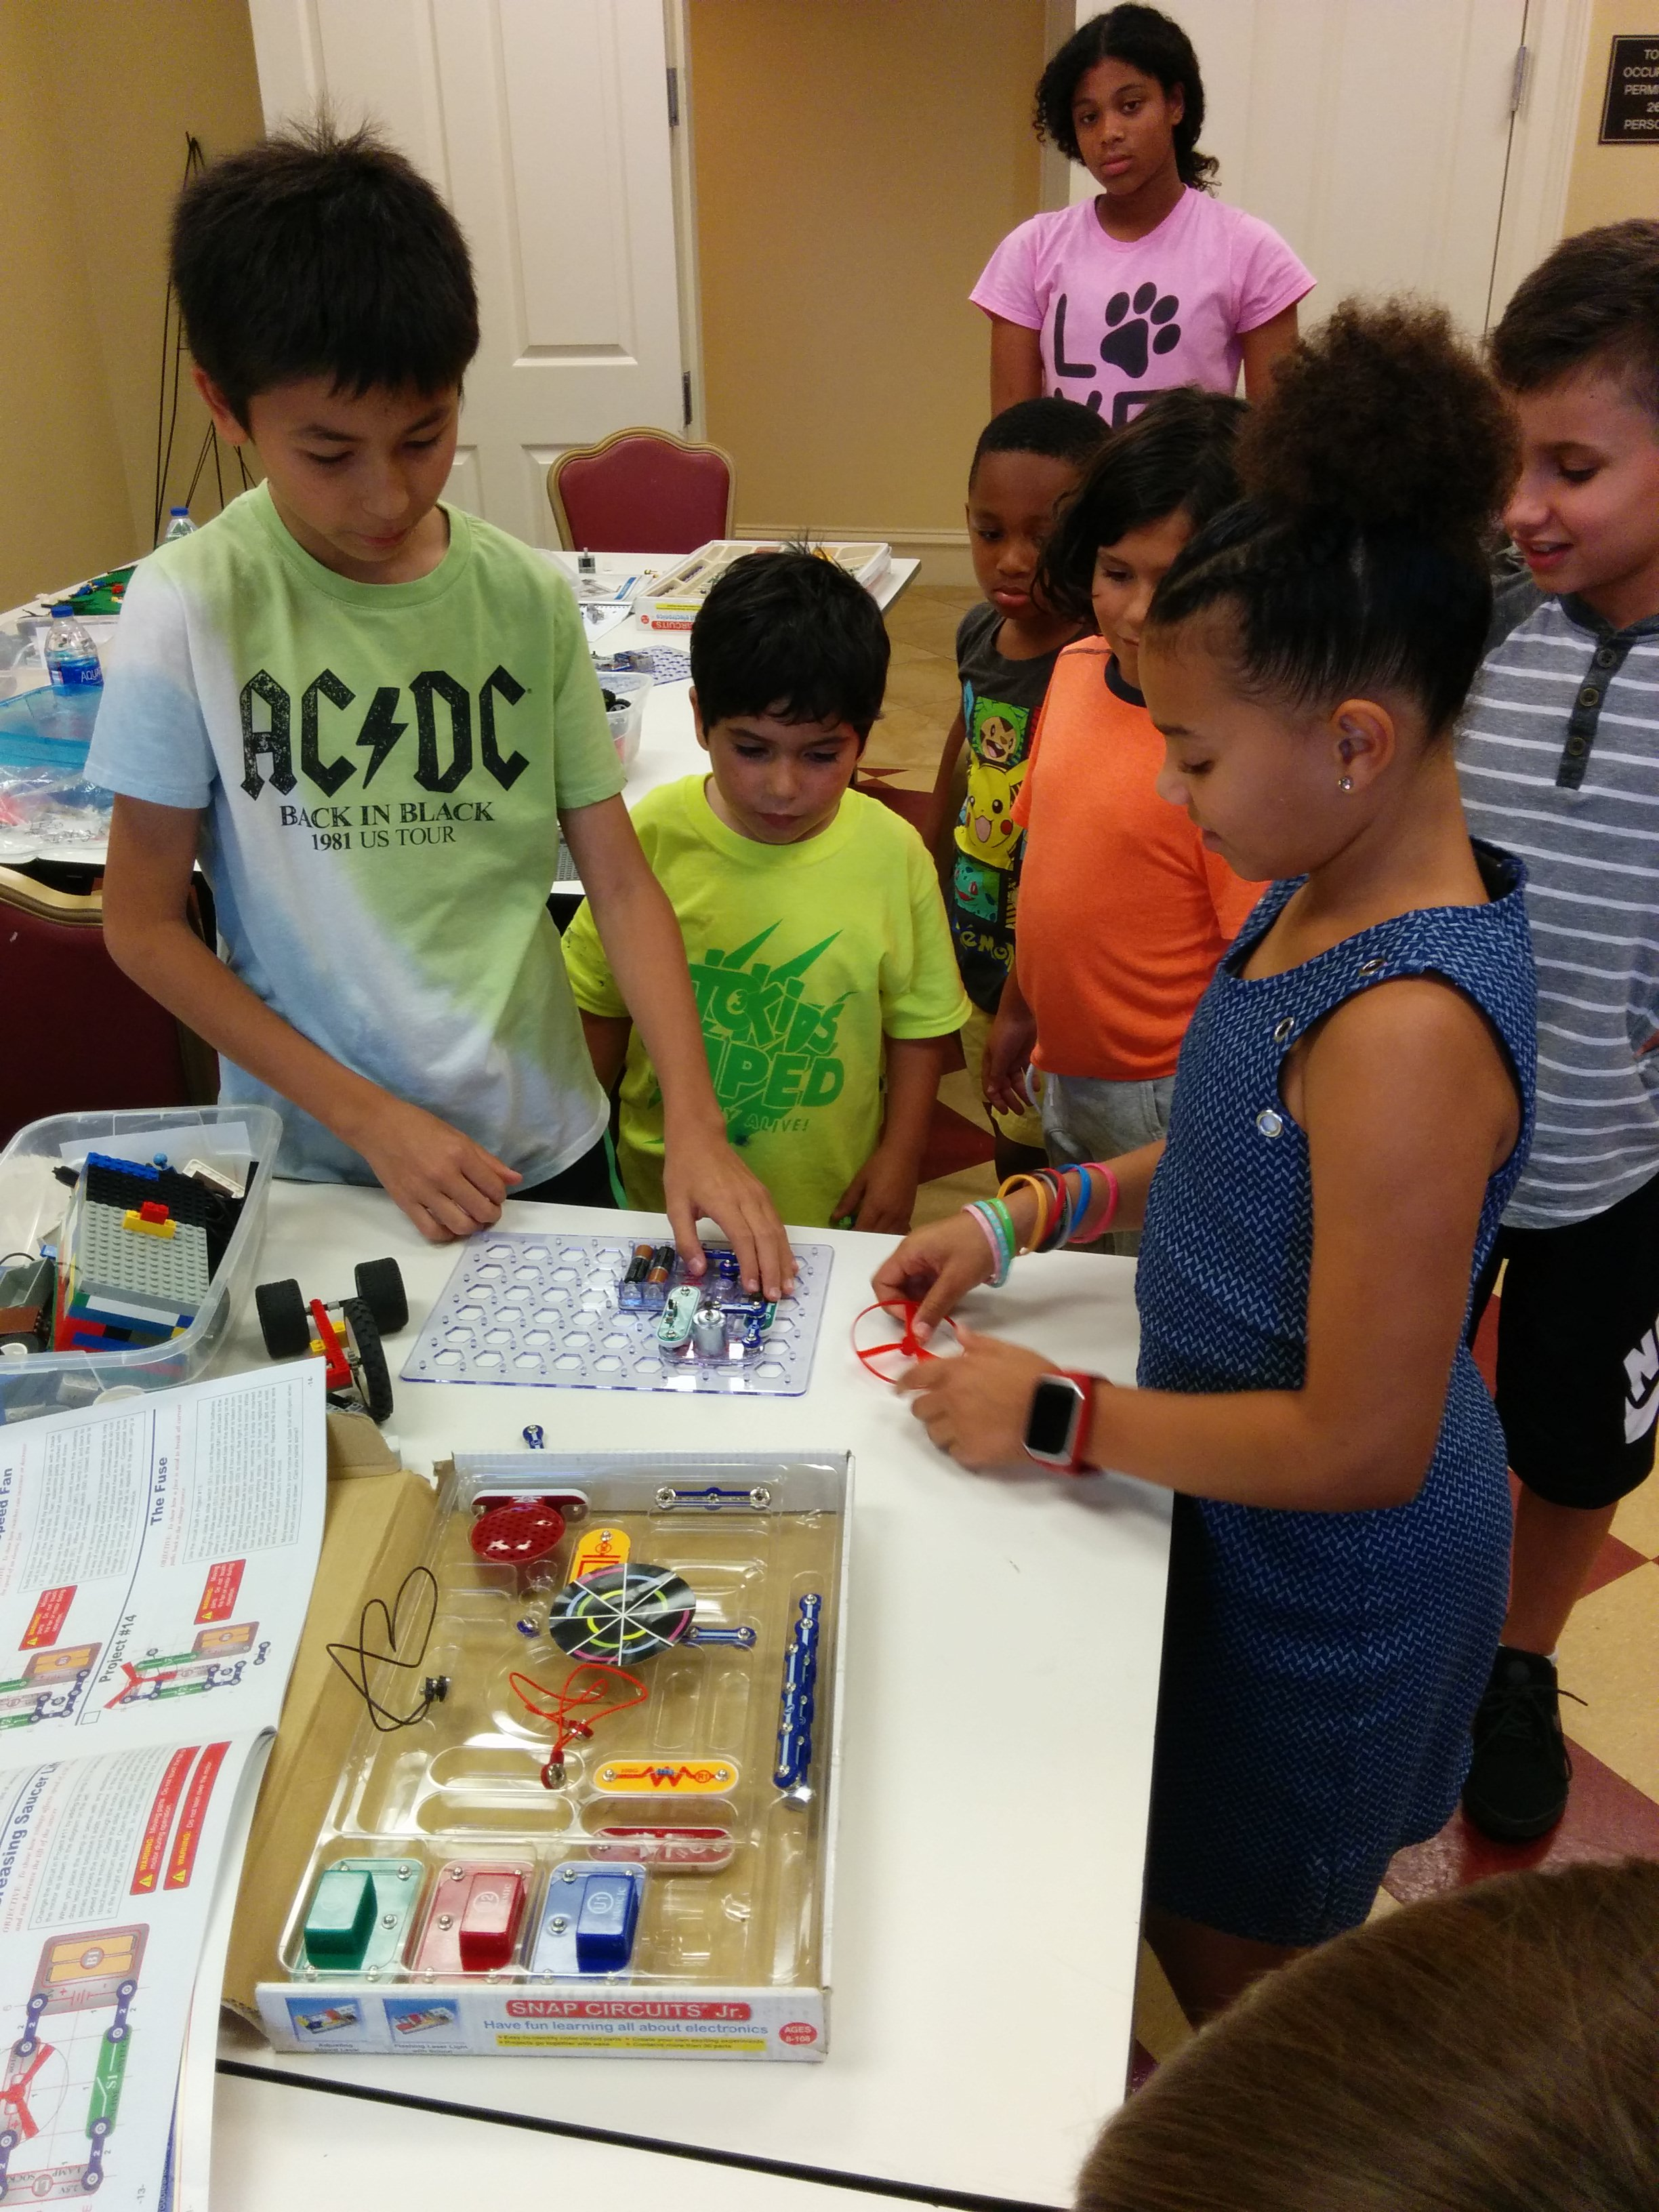 Genius News Institute For Kids Learn Electronics With Snap Circuits2 We Had A Wonderful Time Working On Building Legos As Well Circuit Challenges